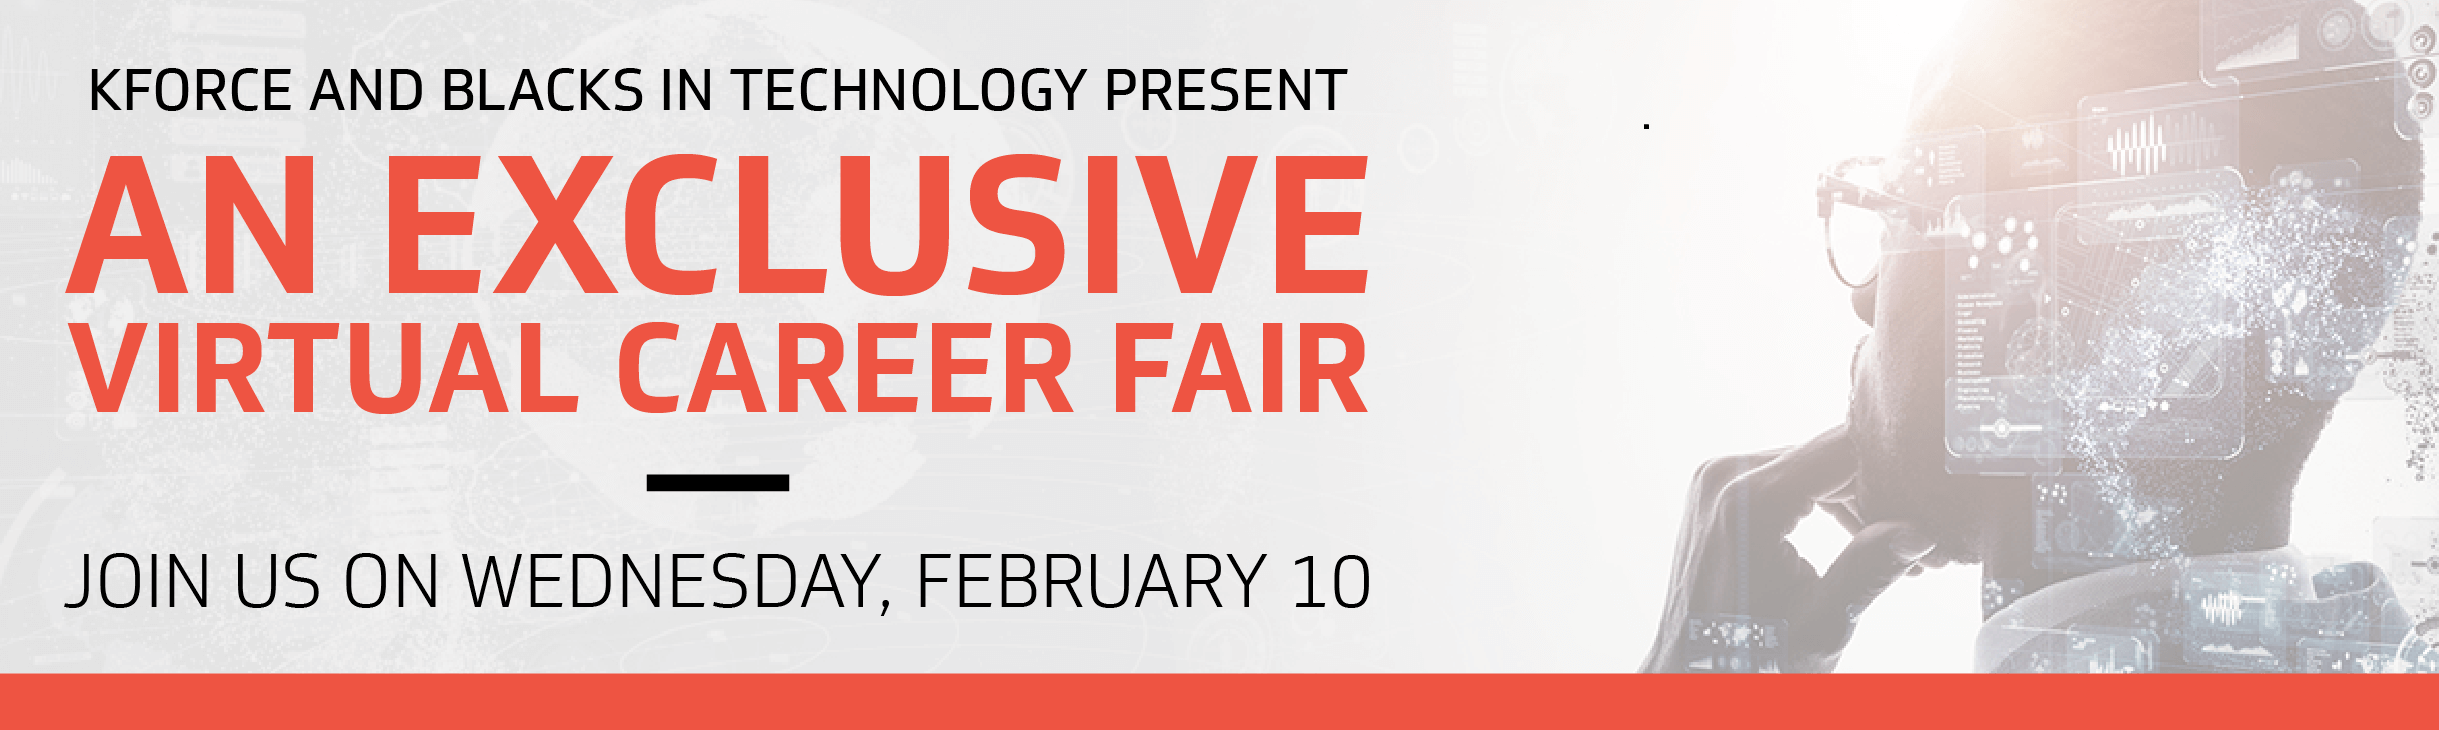 Kforce and Blacks in Technology Present an Exclusive Virtual Career Fair